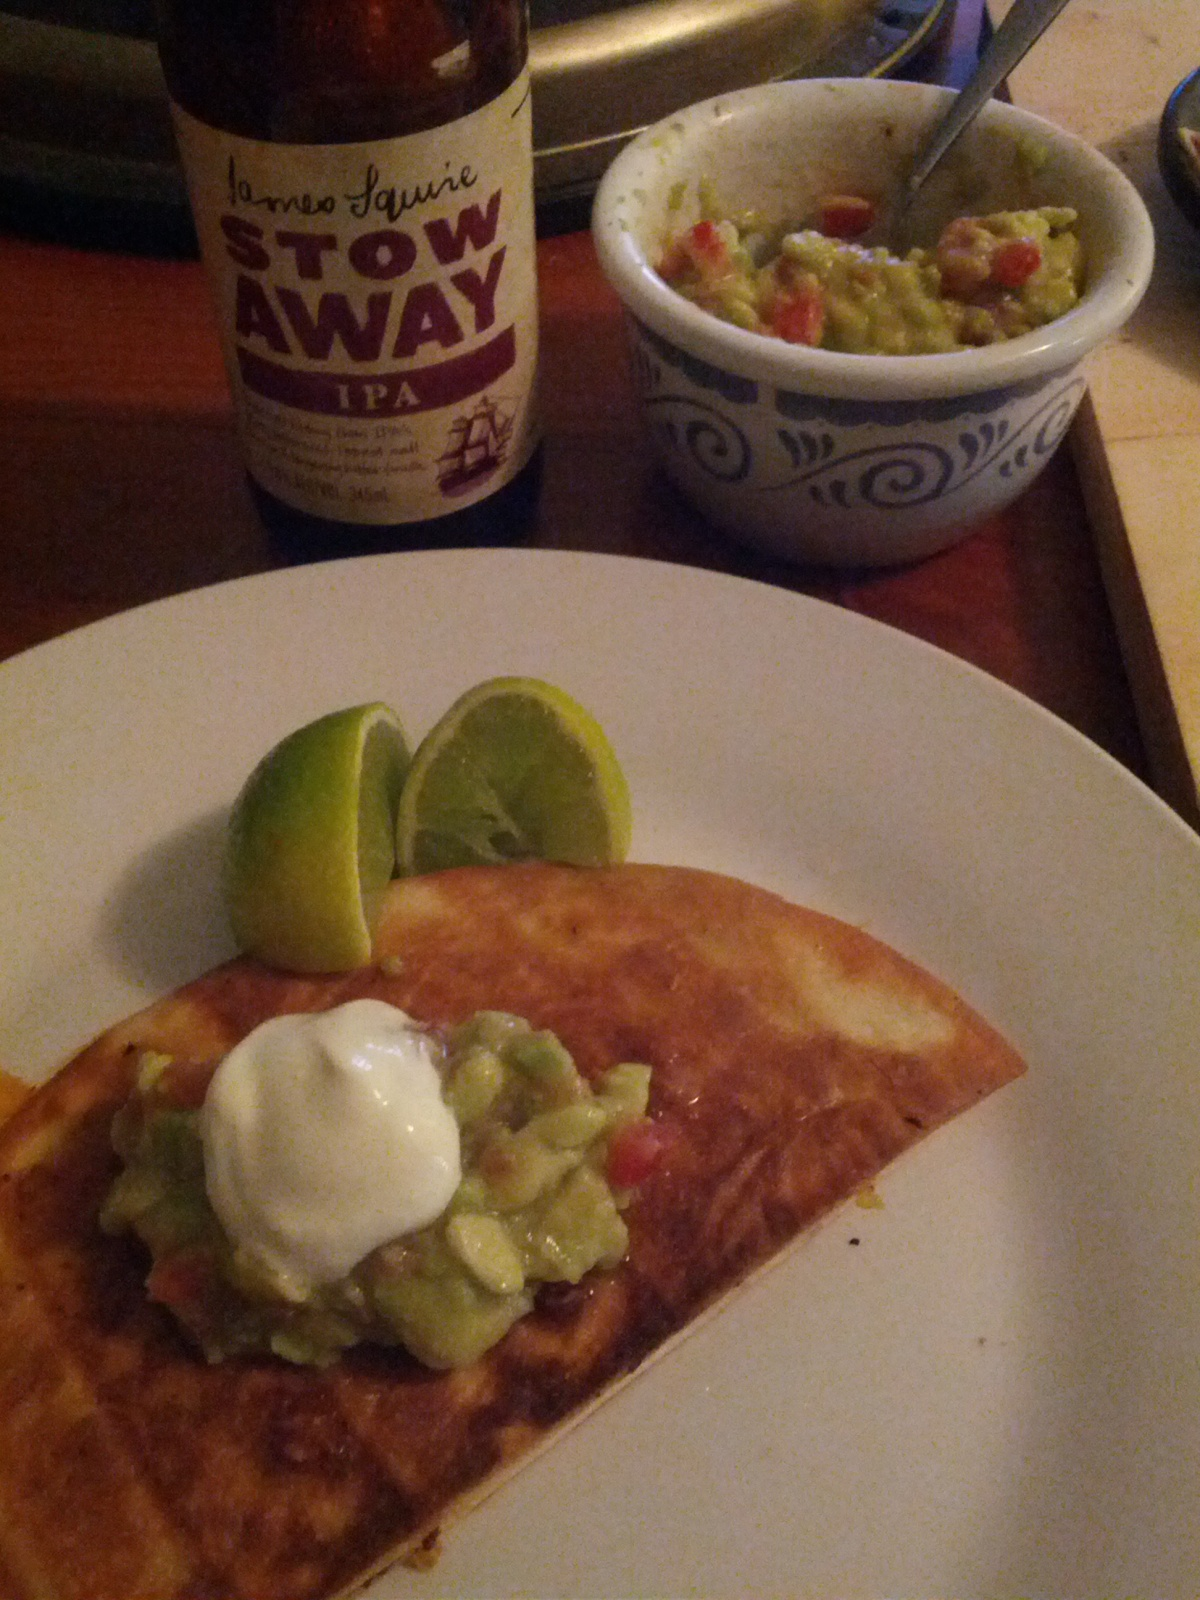 Quesadillas + IPA